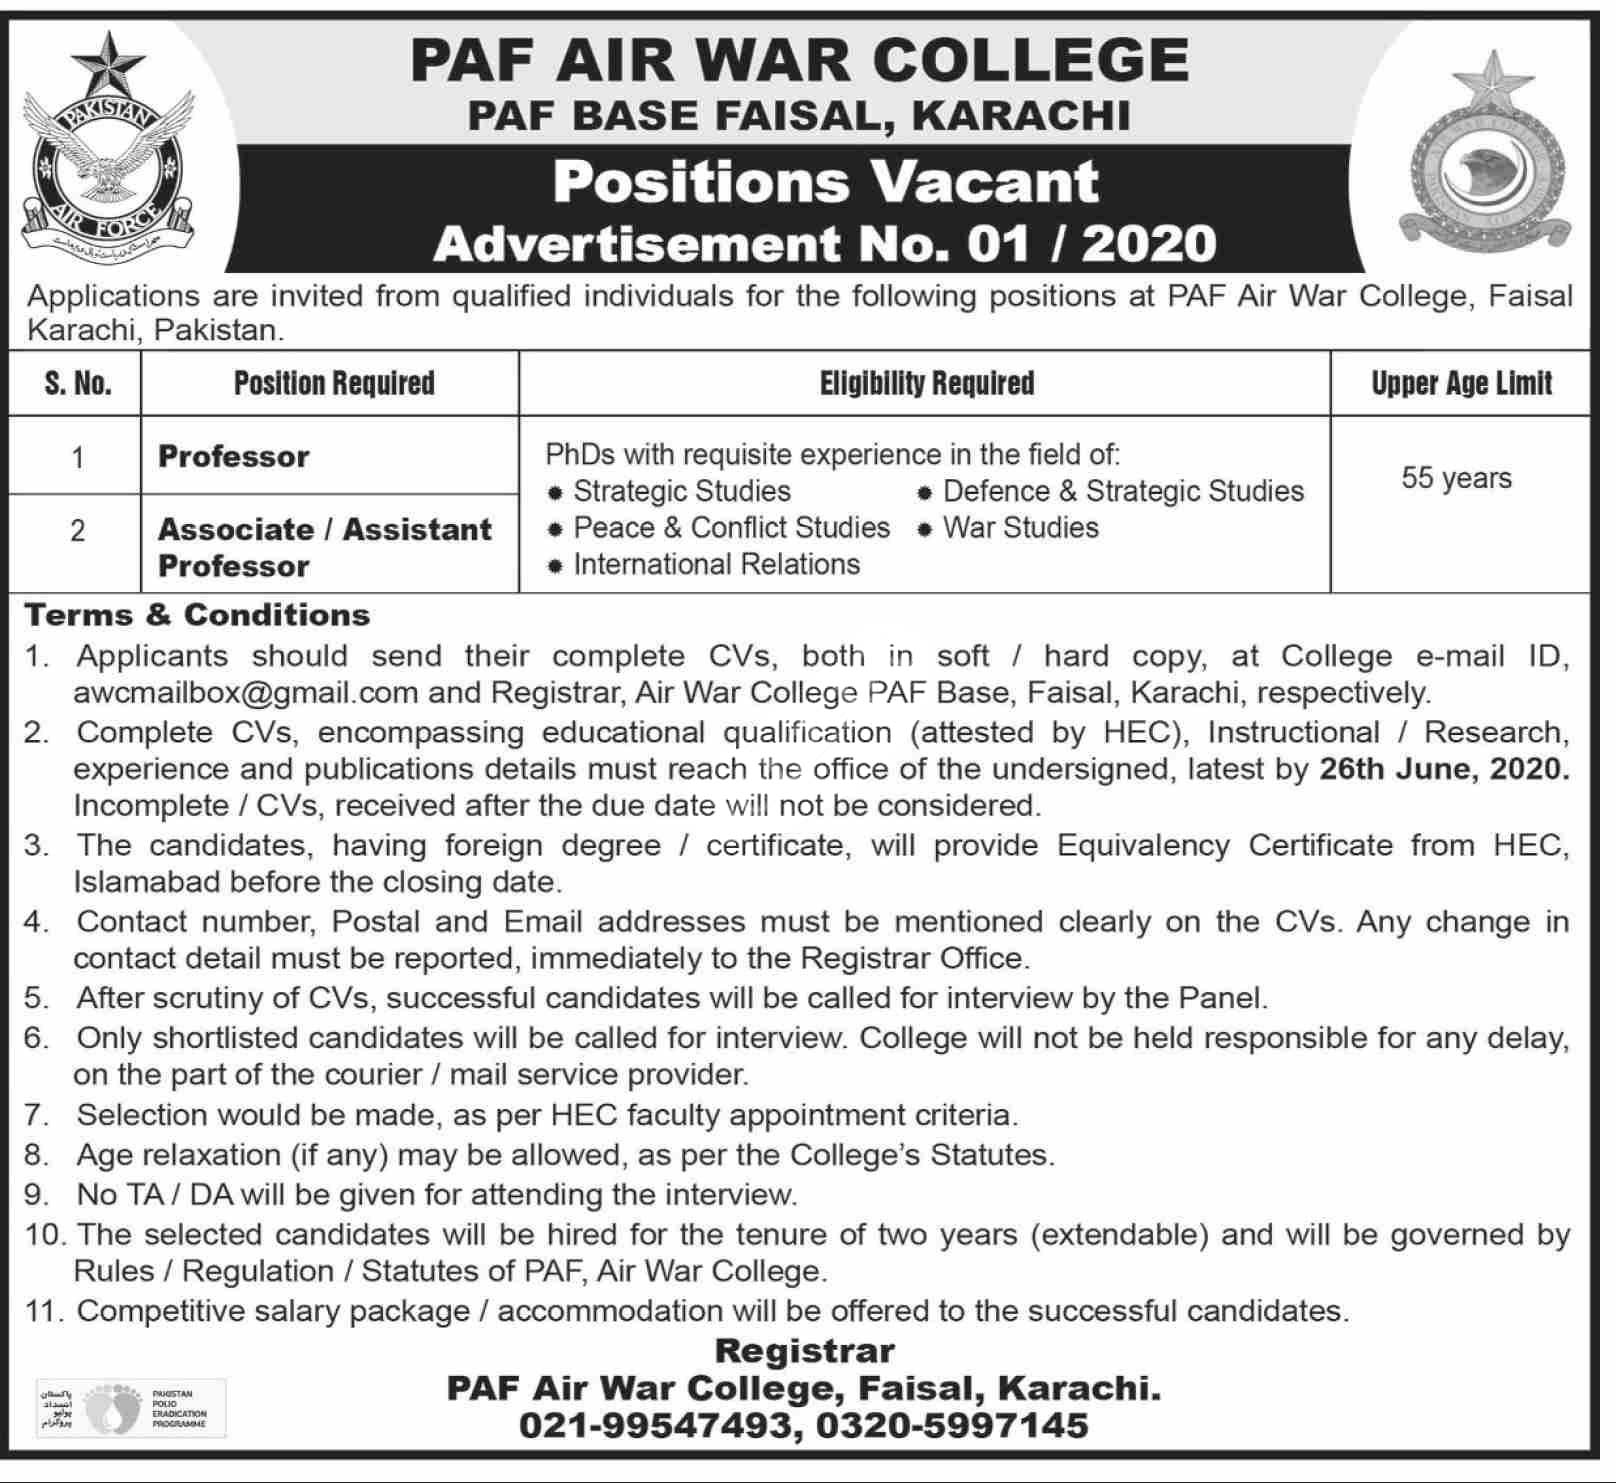 Paf Air War College Paf Base Faisal Karachi Jobs 2020 Latest